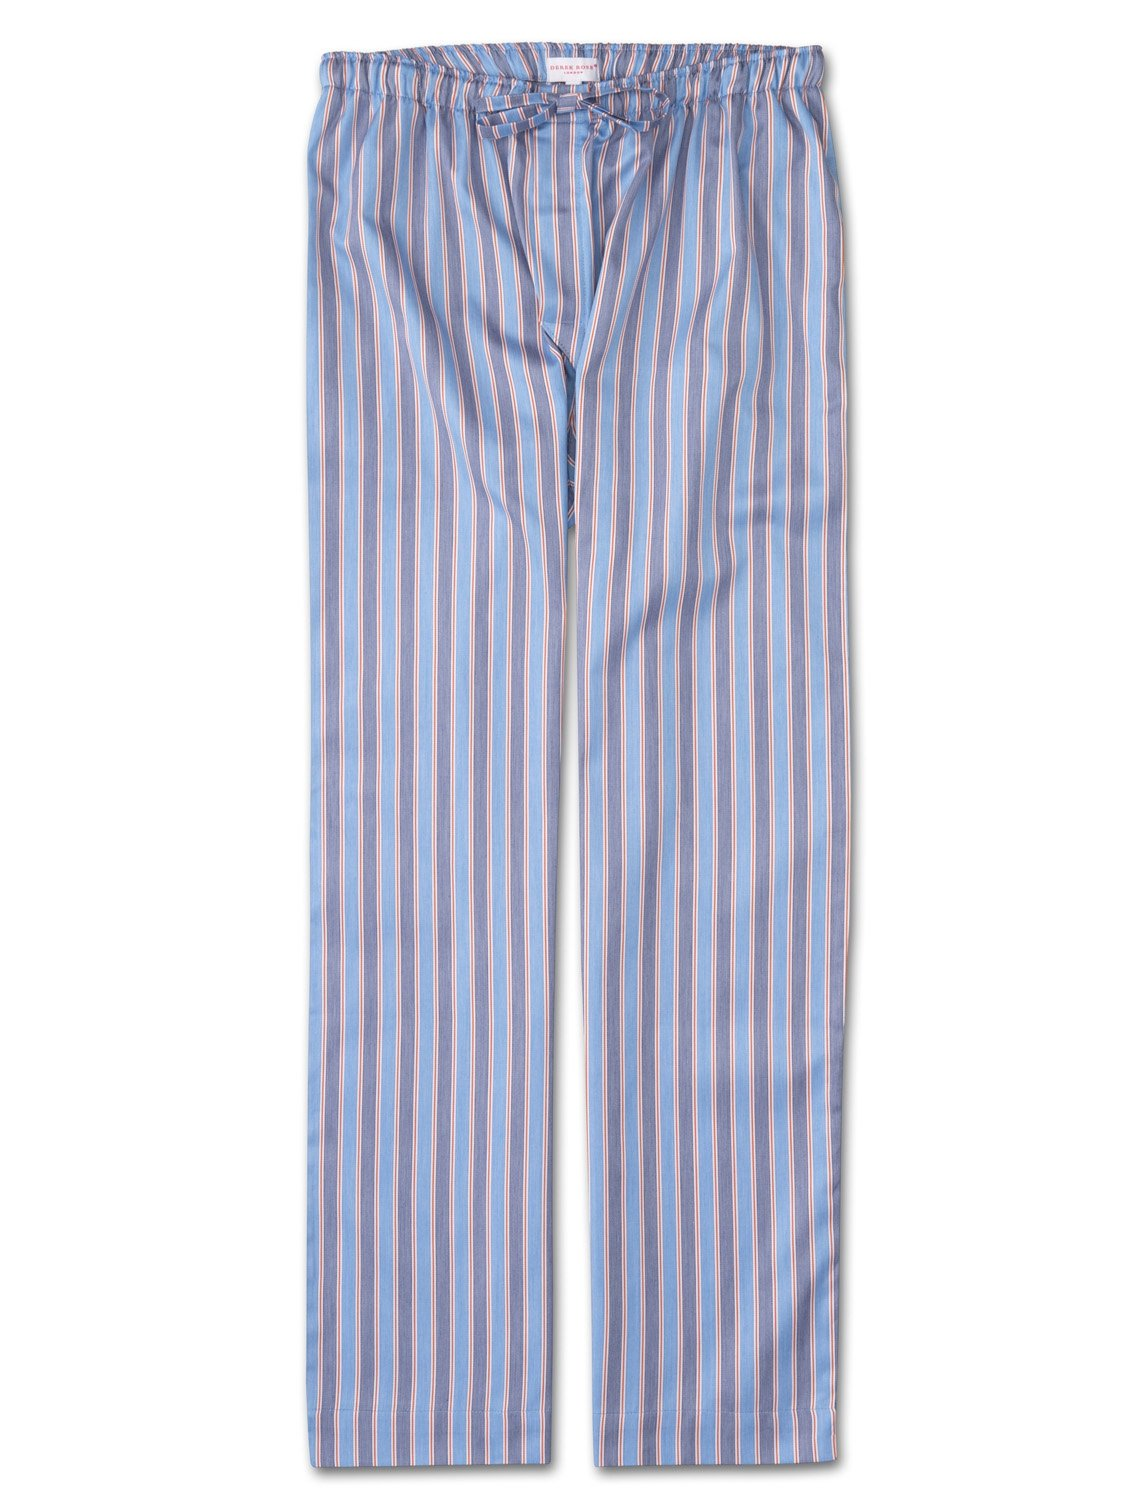 Men's Lounge Trousers Elite 47 Cotton Full Satin Stripe Blue